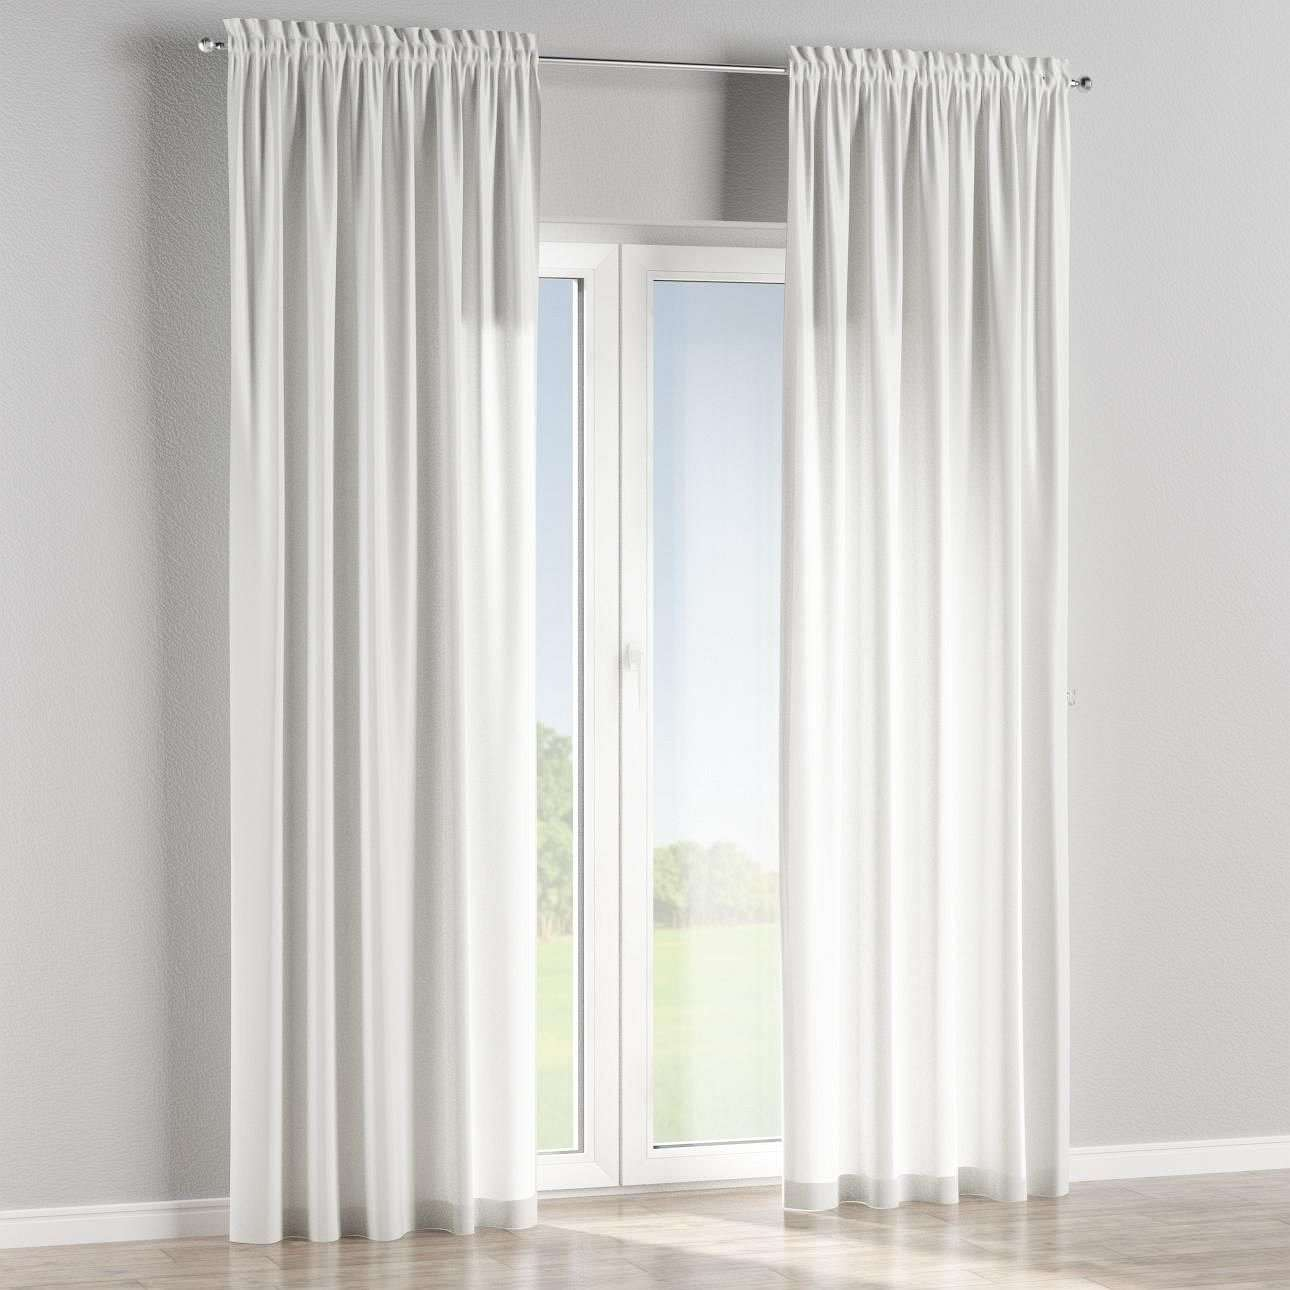 Slot and frill lined curtains in collection Cardiff, fabric: 136-20